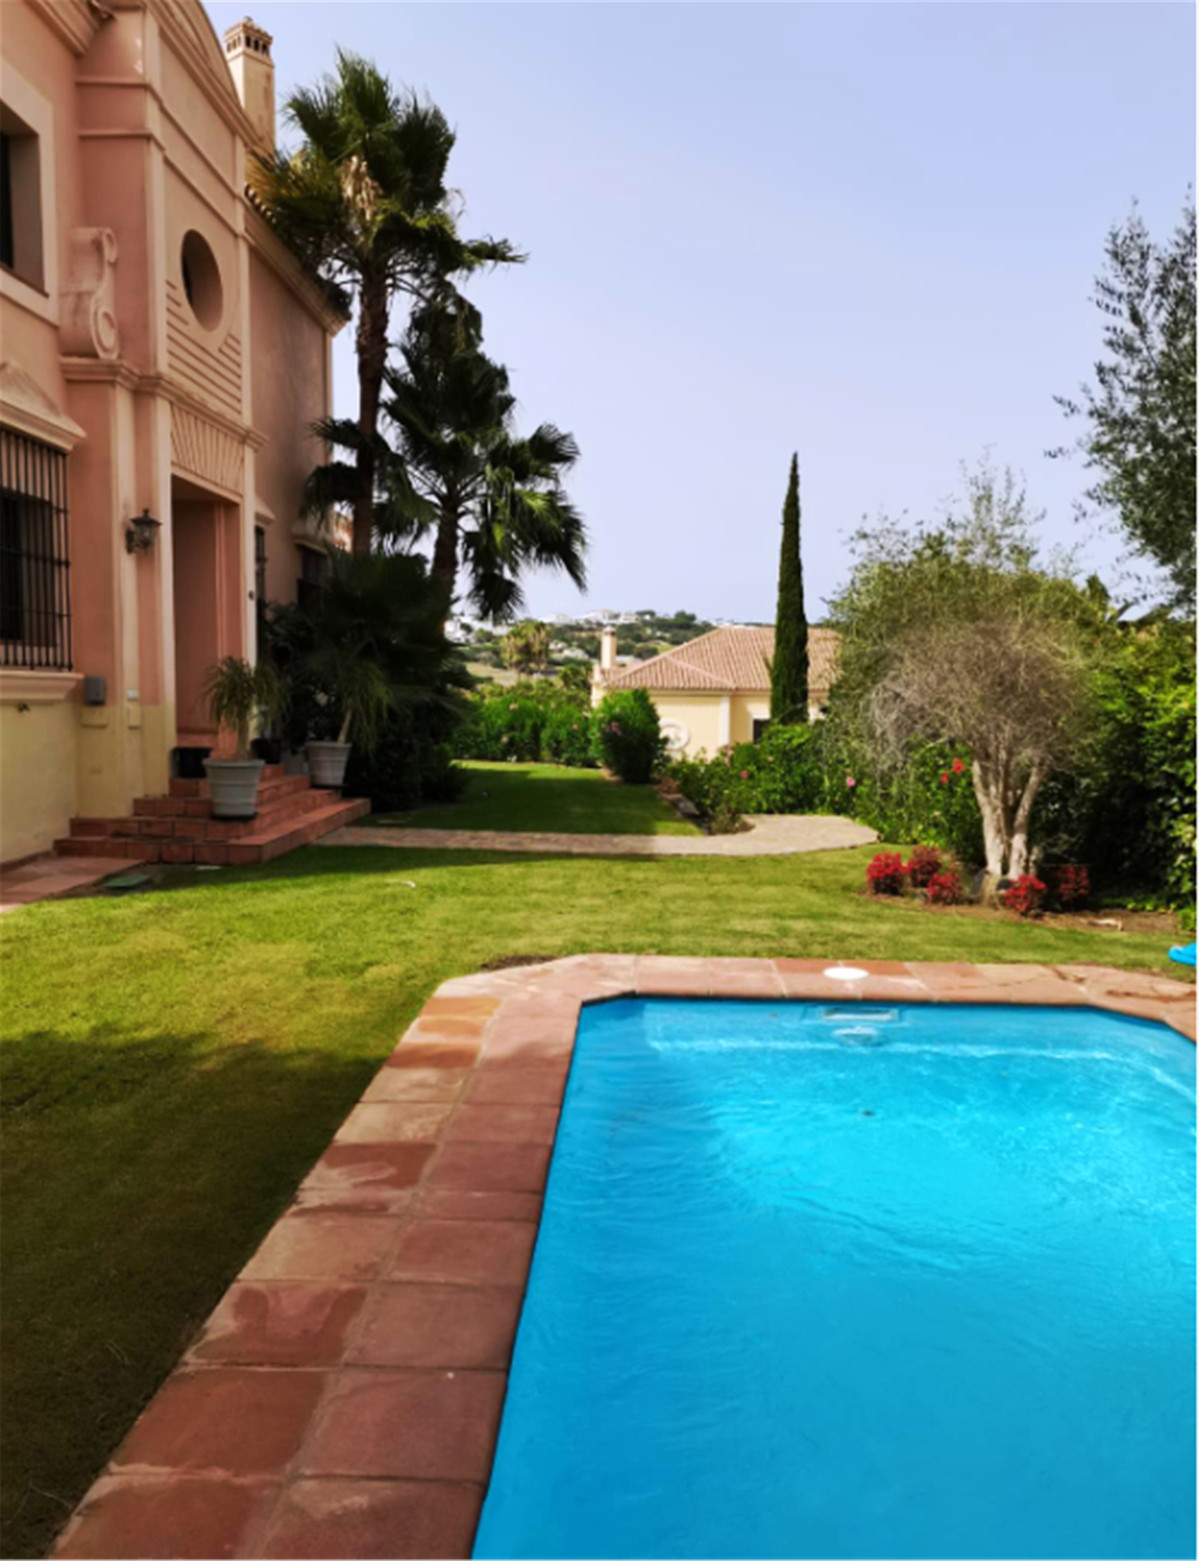 LUXURY 4 BEDROOM Villa ...   Fantastic opportunity to acquire this beautiful private villa in the ar, Spain